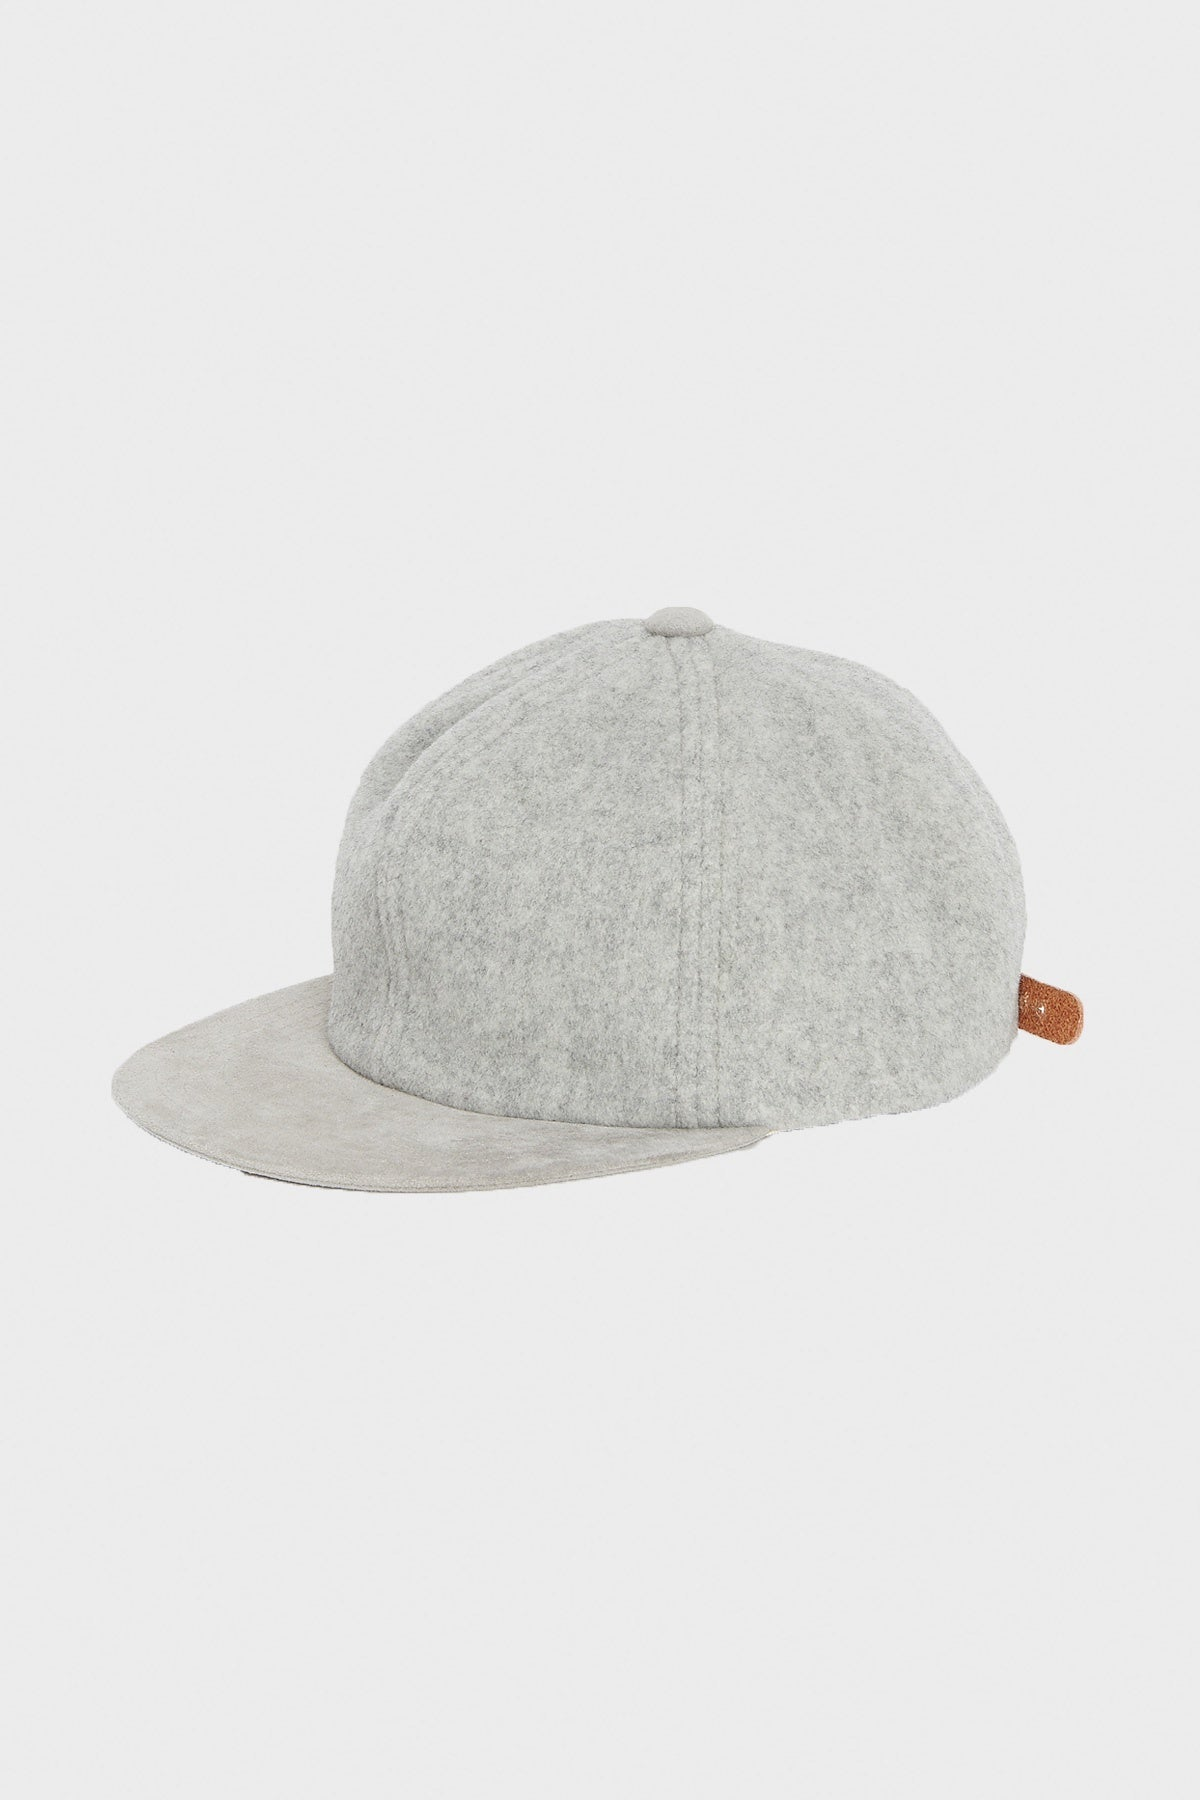 Hender Scheme - 2 Tone Wool Cap - Light Grey - Canoe Club